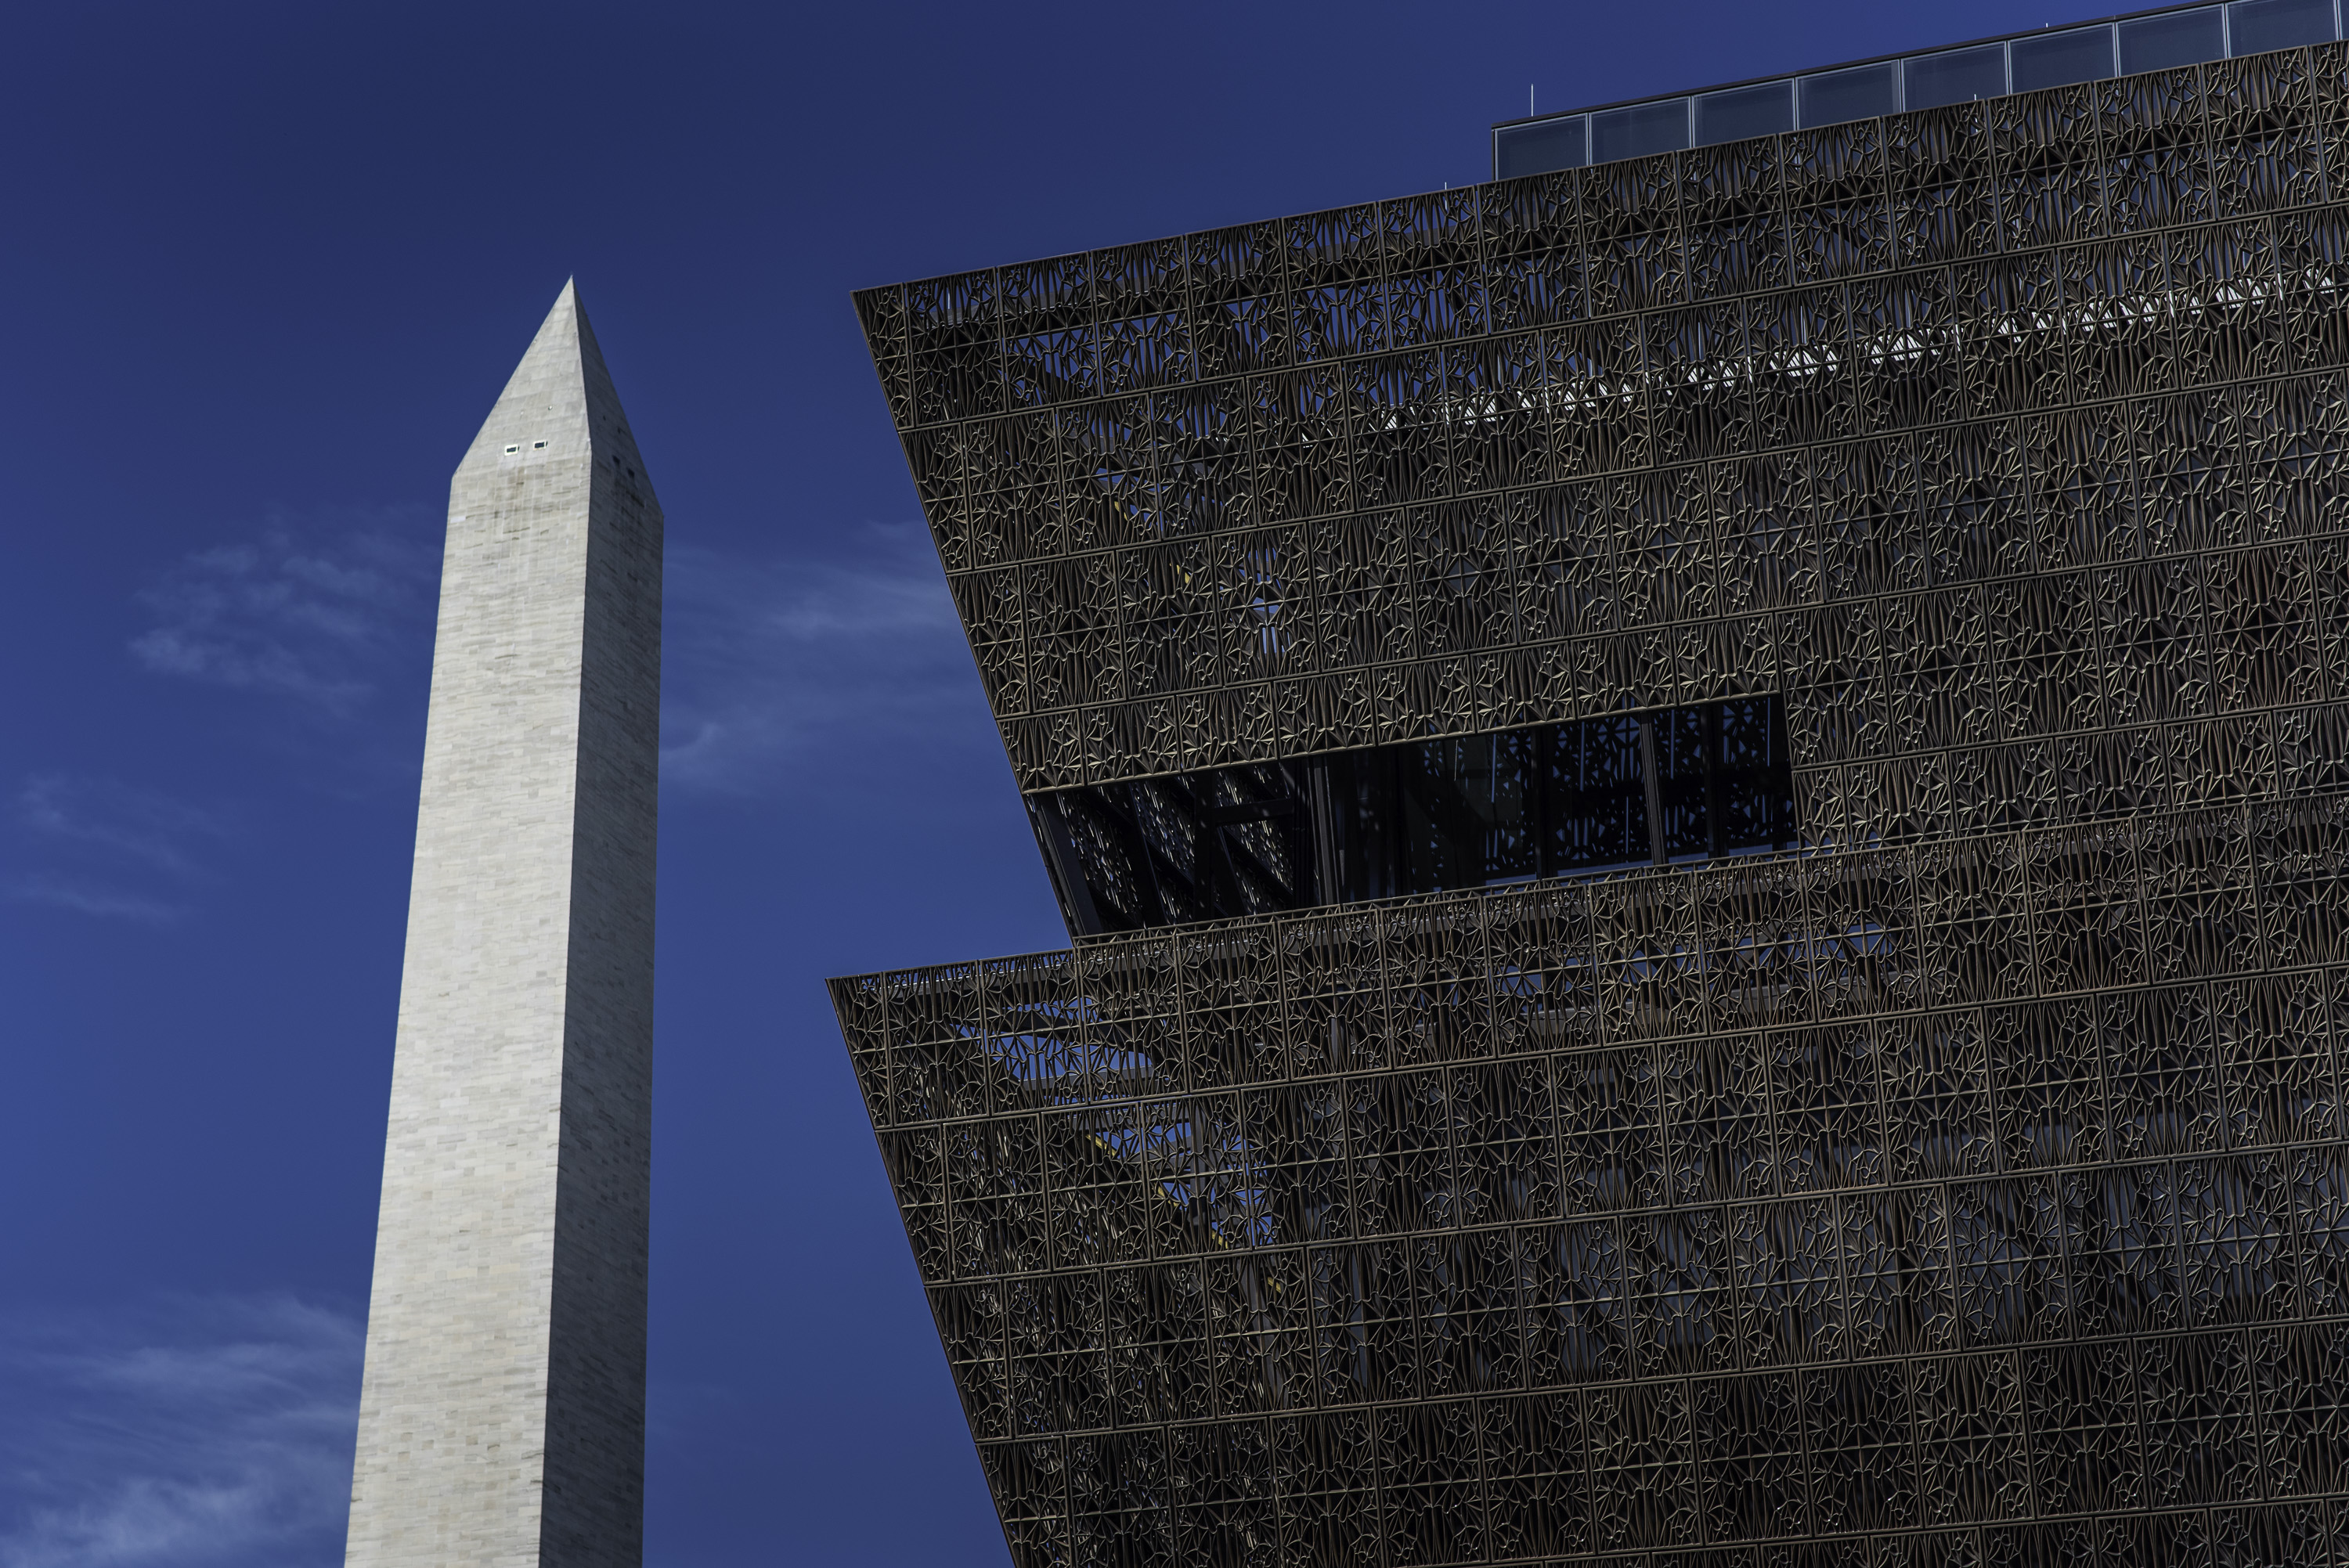 Shot of Washington Monument alongside the copper edges of a tiered copper building.